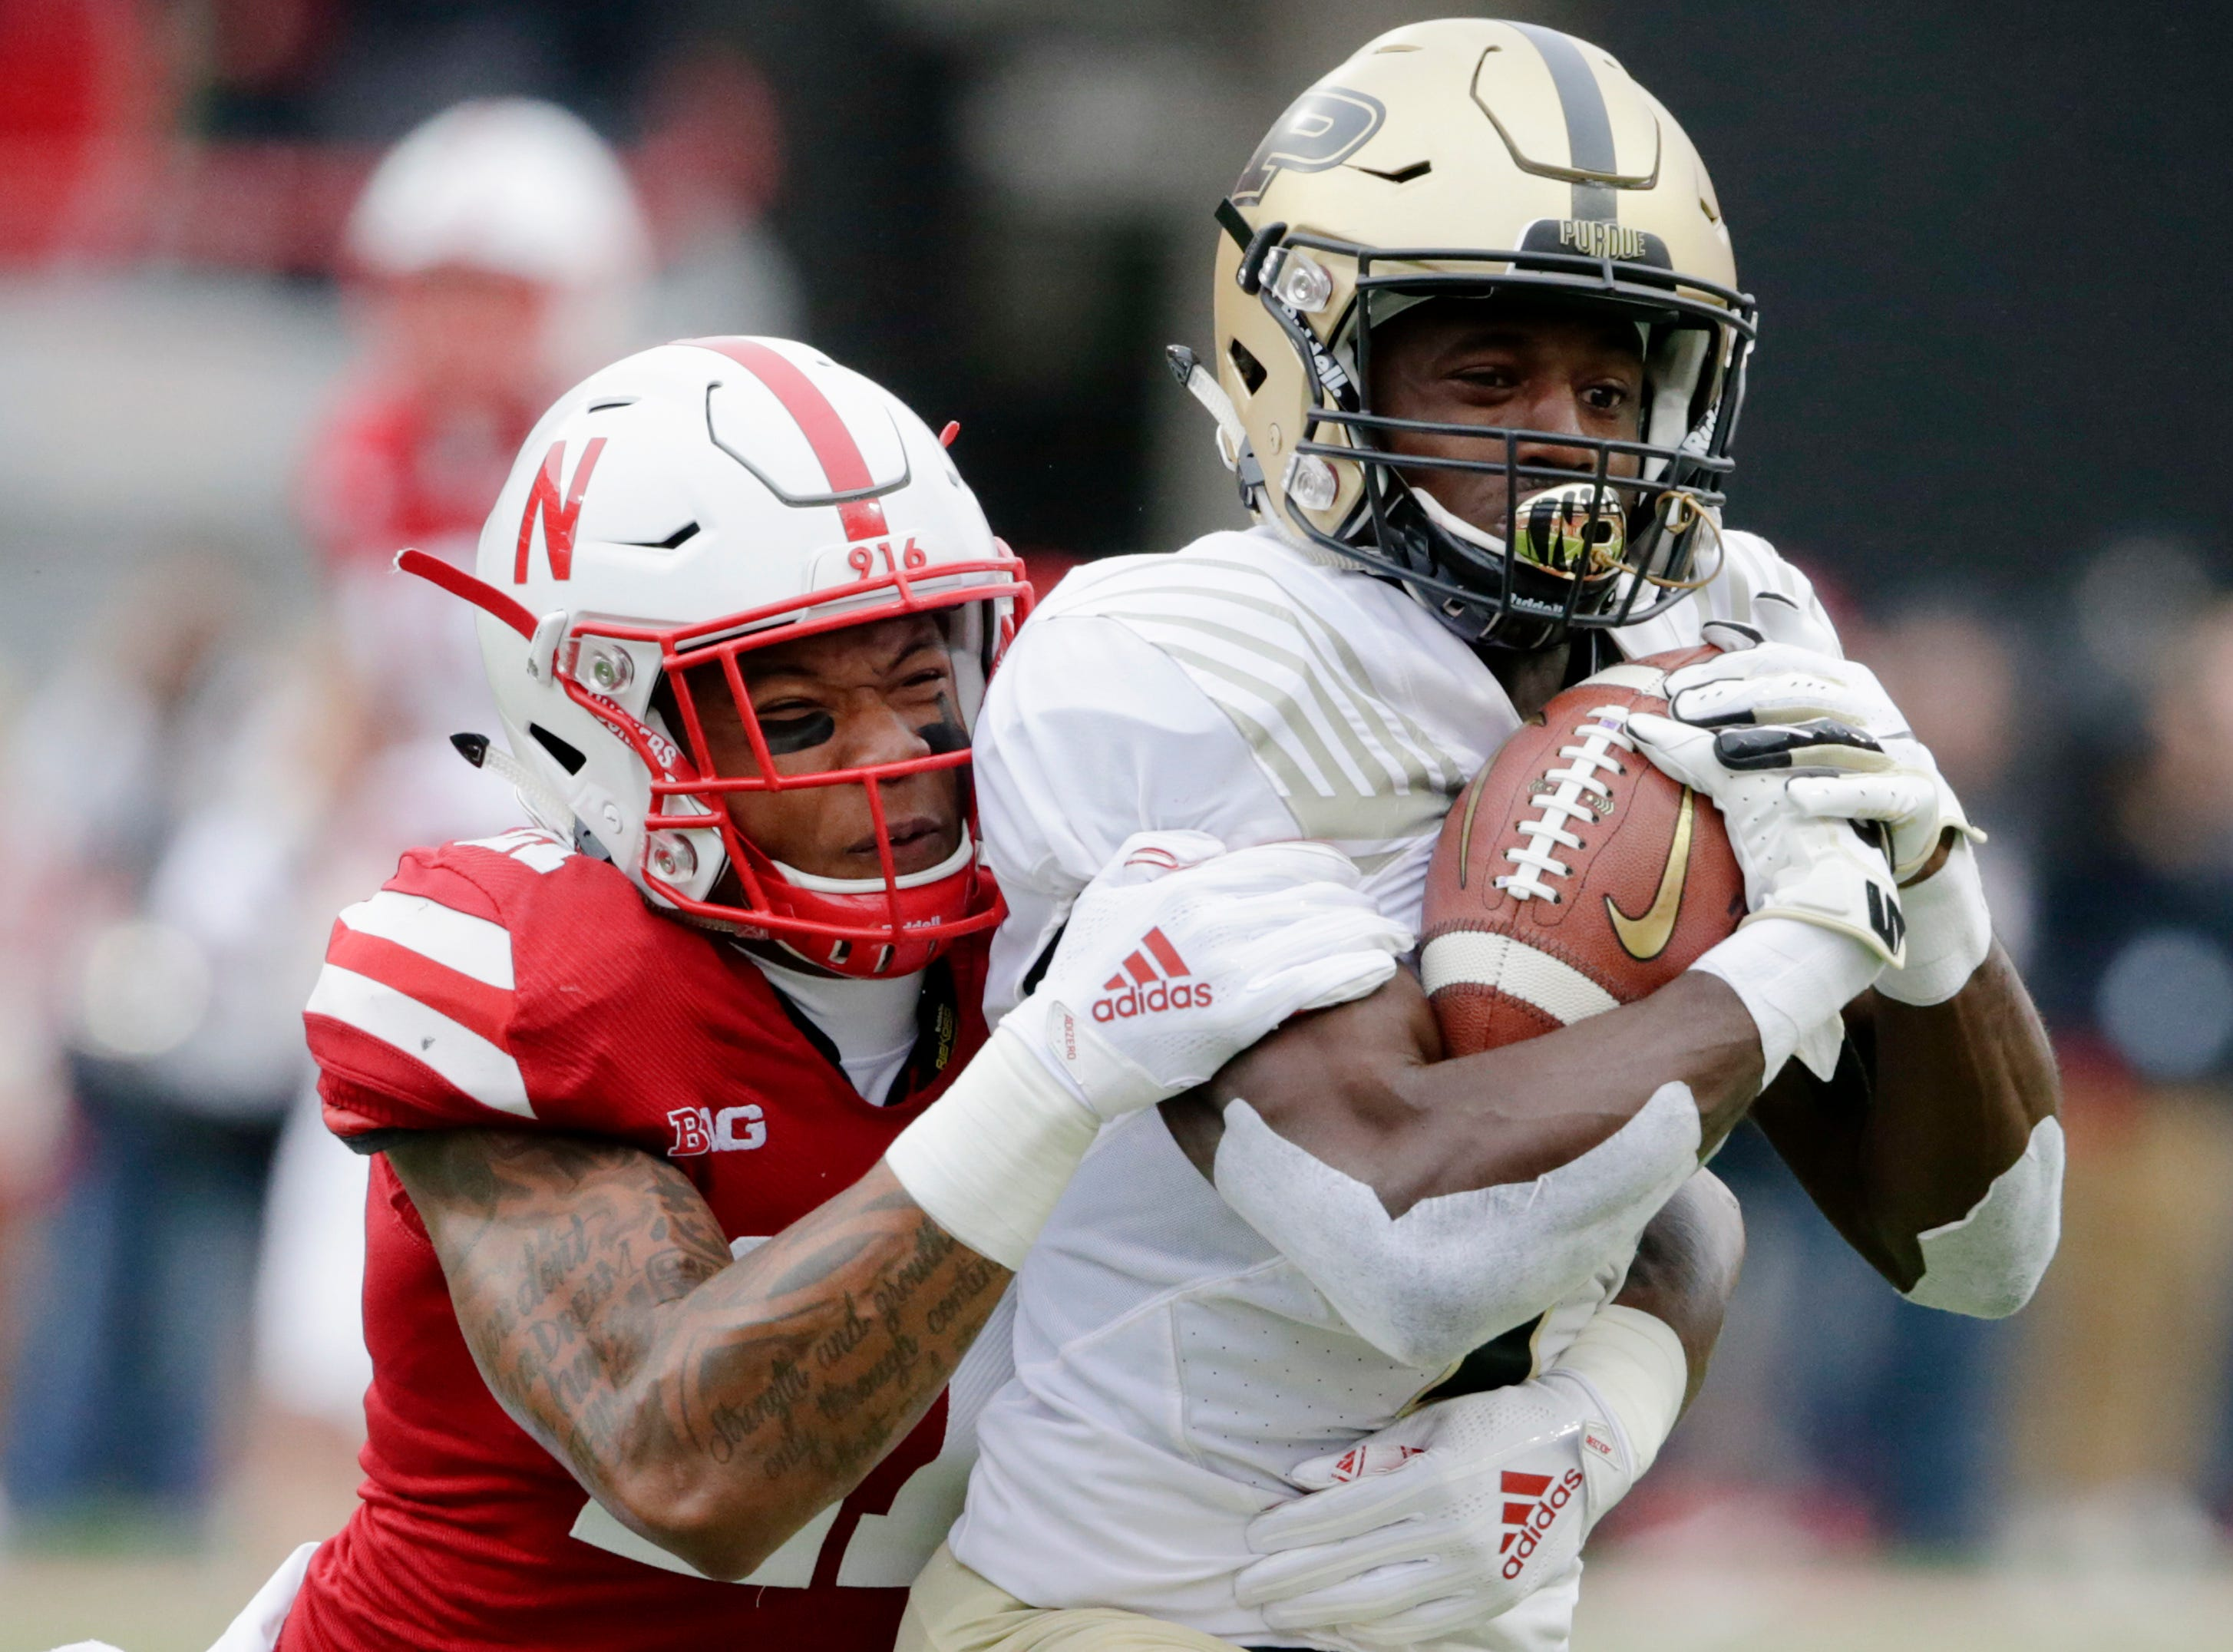 Purdue wide receiver Isaac Zico (7) is tackled by Nebraska defensive back Lamar Jackson (21) during the first half of an NCAA college football game in Lincoln, Neb., Saturday, Sept. 29, 2018. (AP Photo/Nati Harnik)